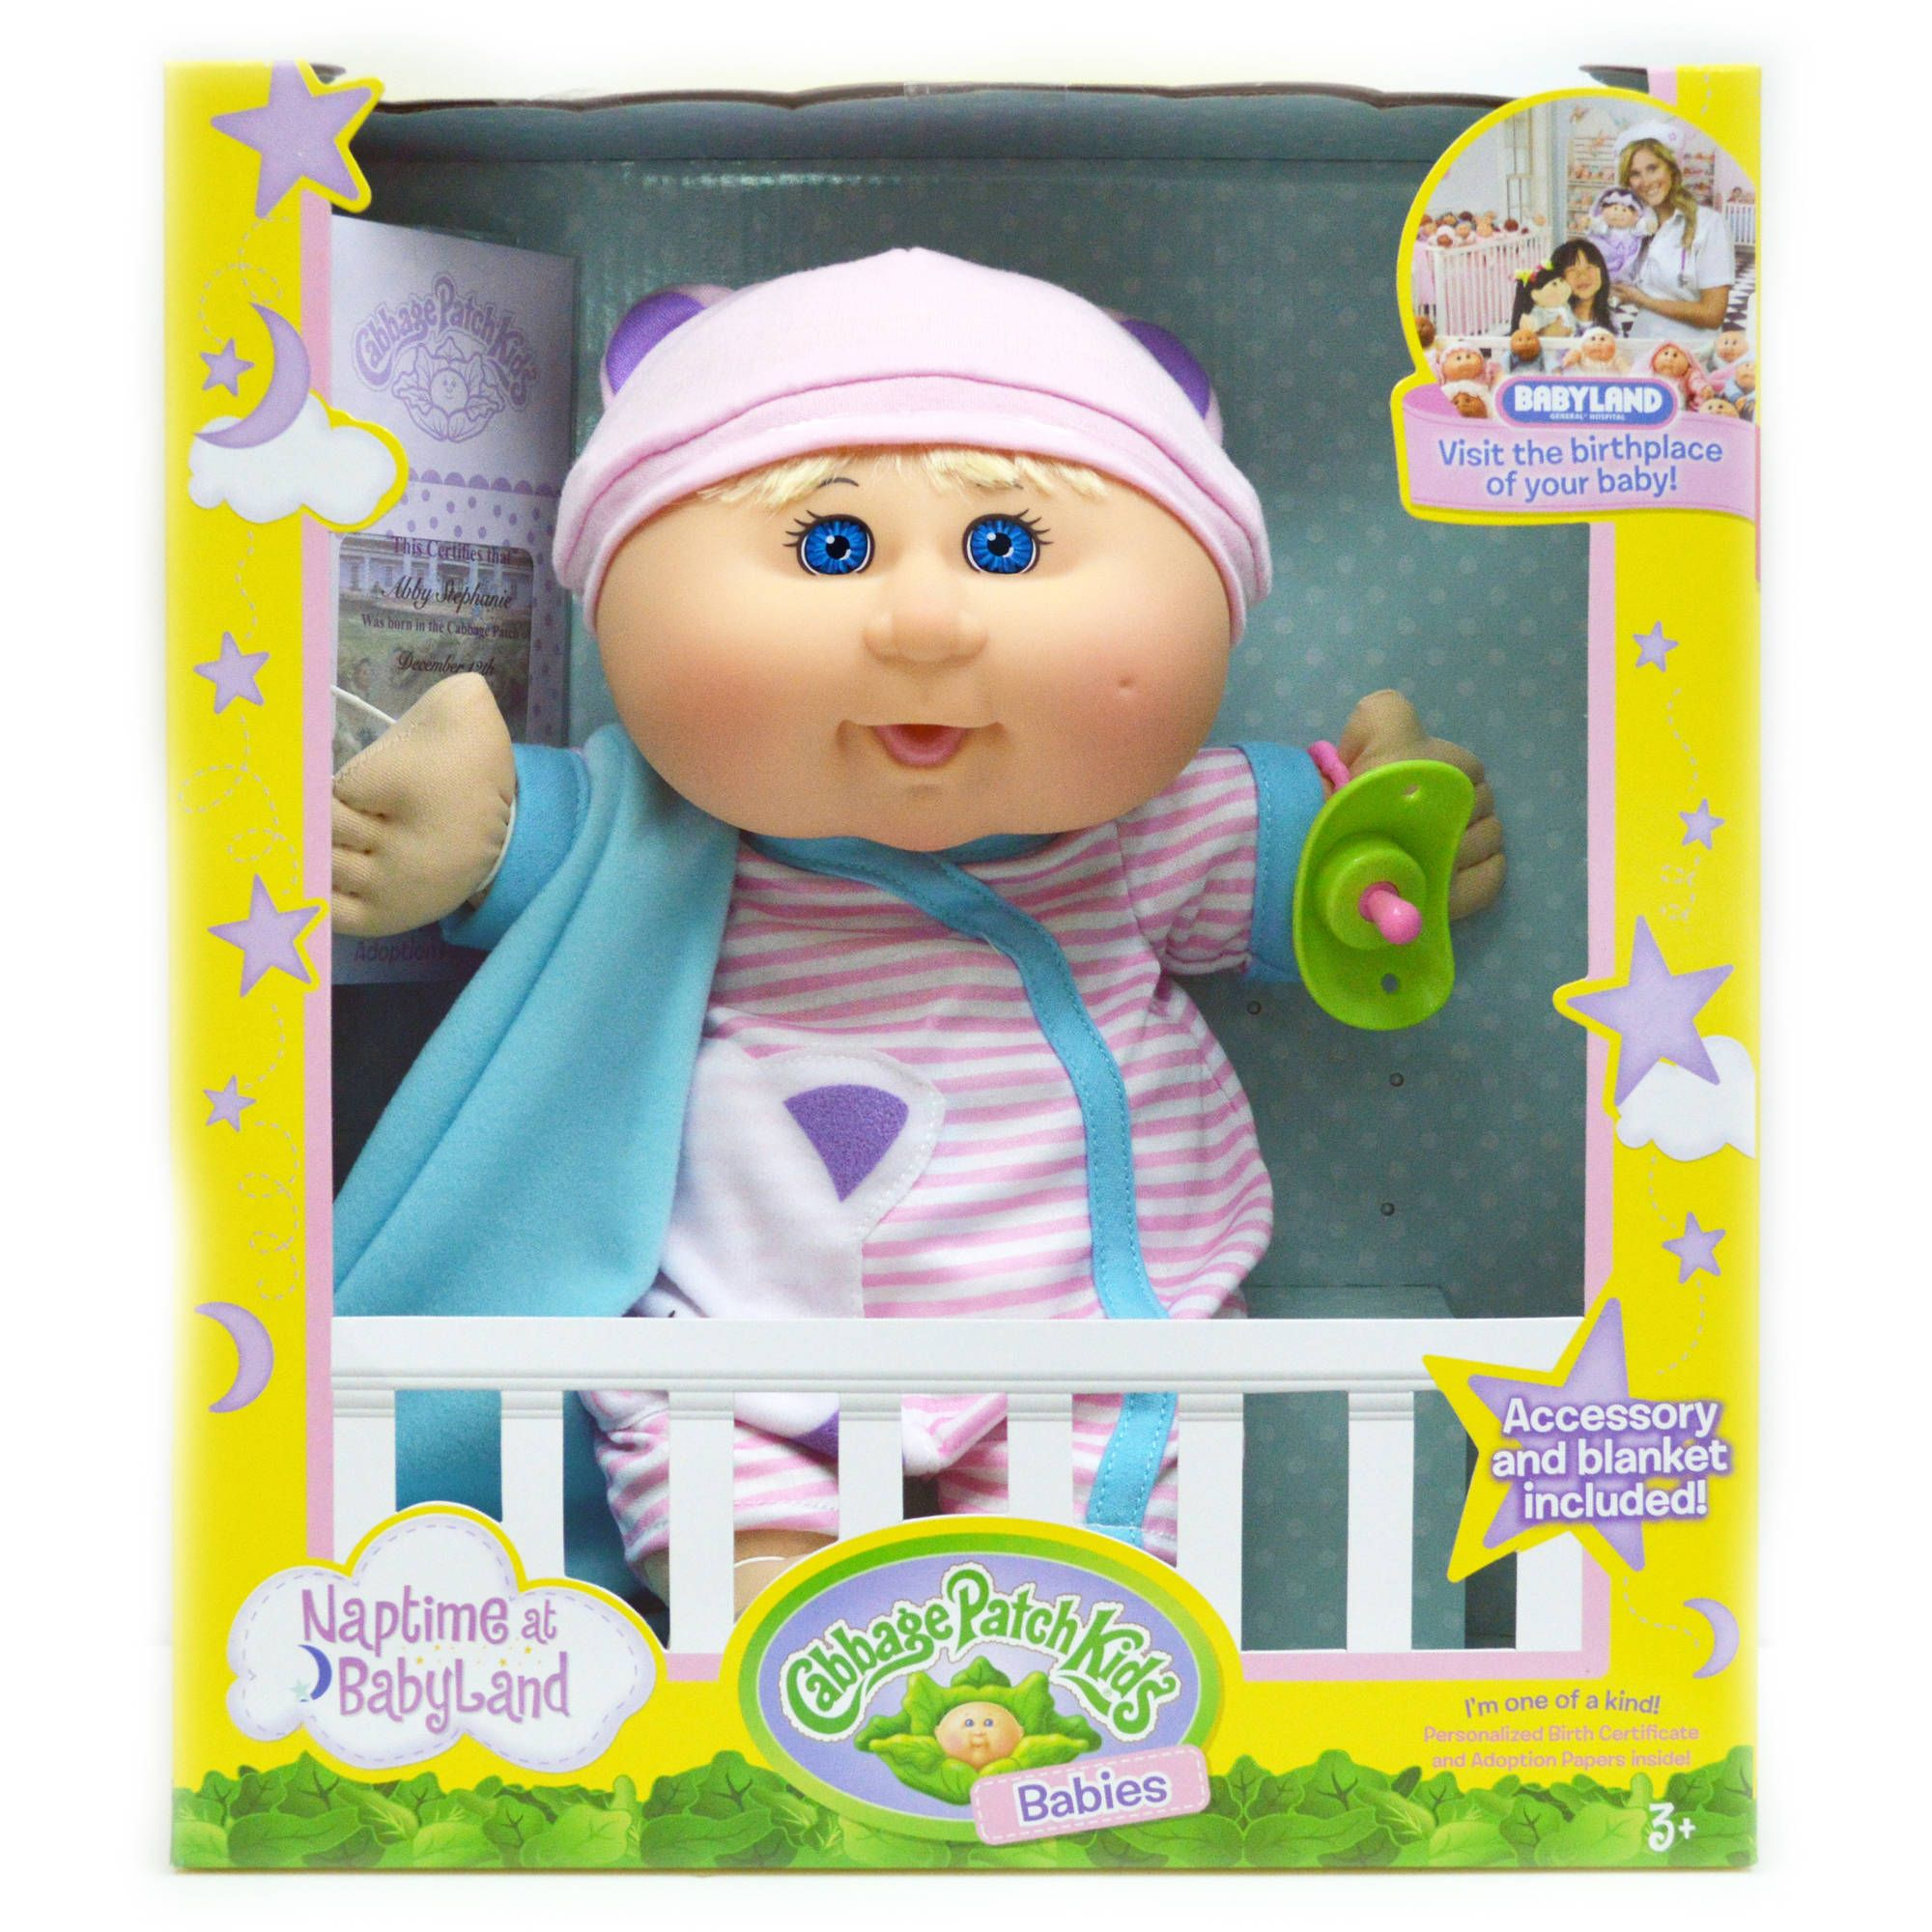 Cabbage Patch Kids Naptime Babies Doll Bald Blue Eye Girl Walmart Com Cabbage Patch Kids Cabbage Patch Babies Patch Kids